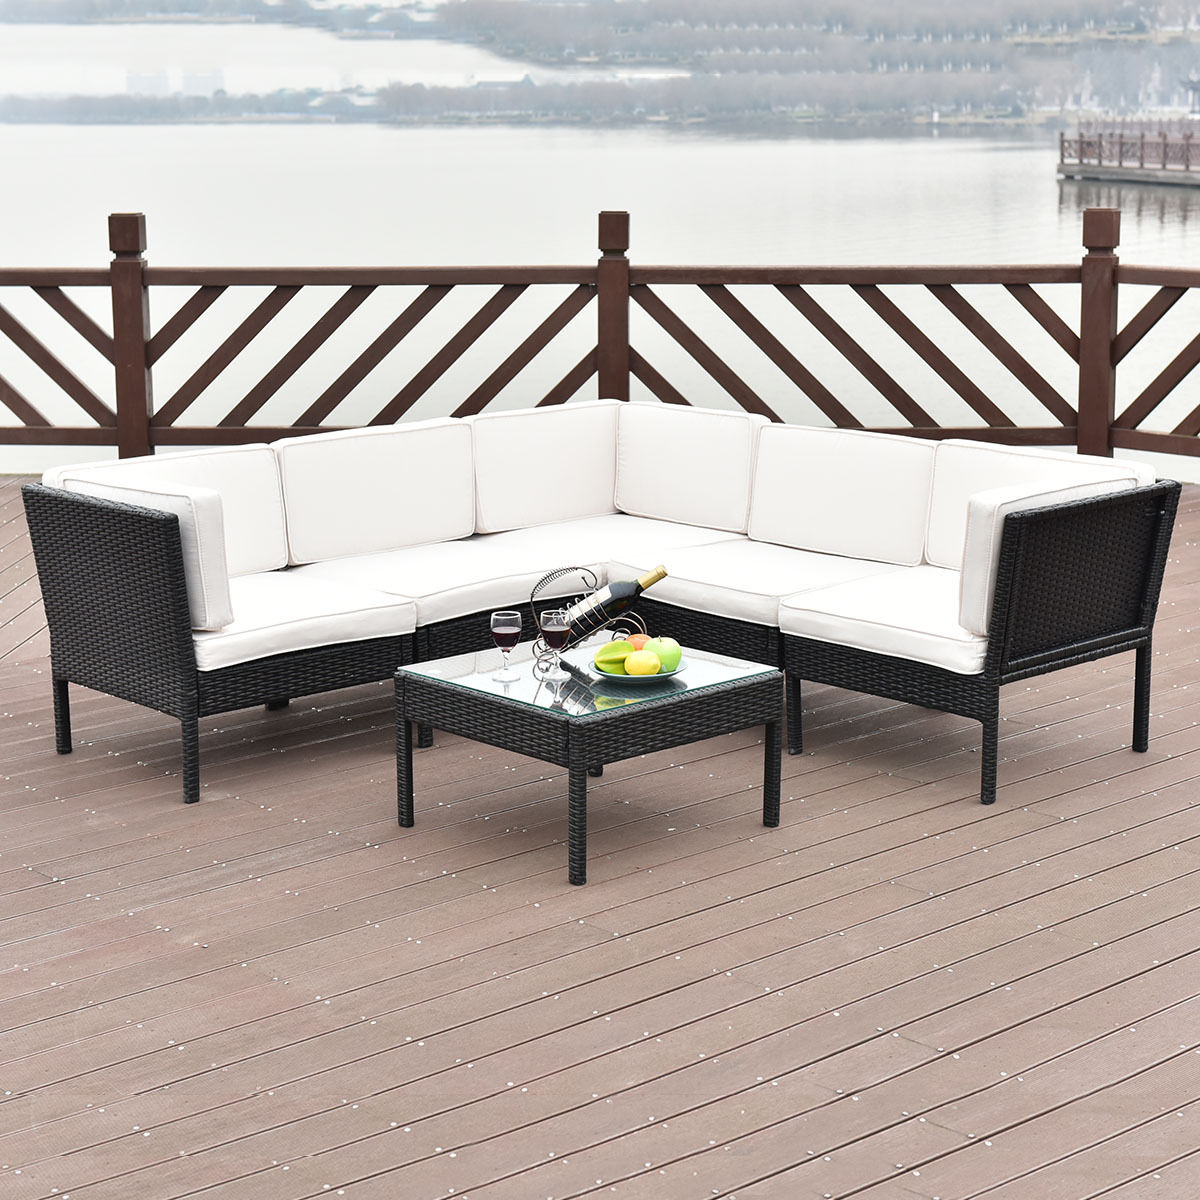 right concrete furniture grey square comfortable shape also garden with combine laminated rectangle l white table sofa rattan choosing the patio on ottoman decor floor brown cover tips coffee glass chic